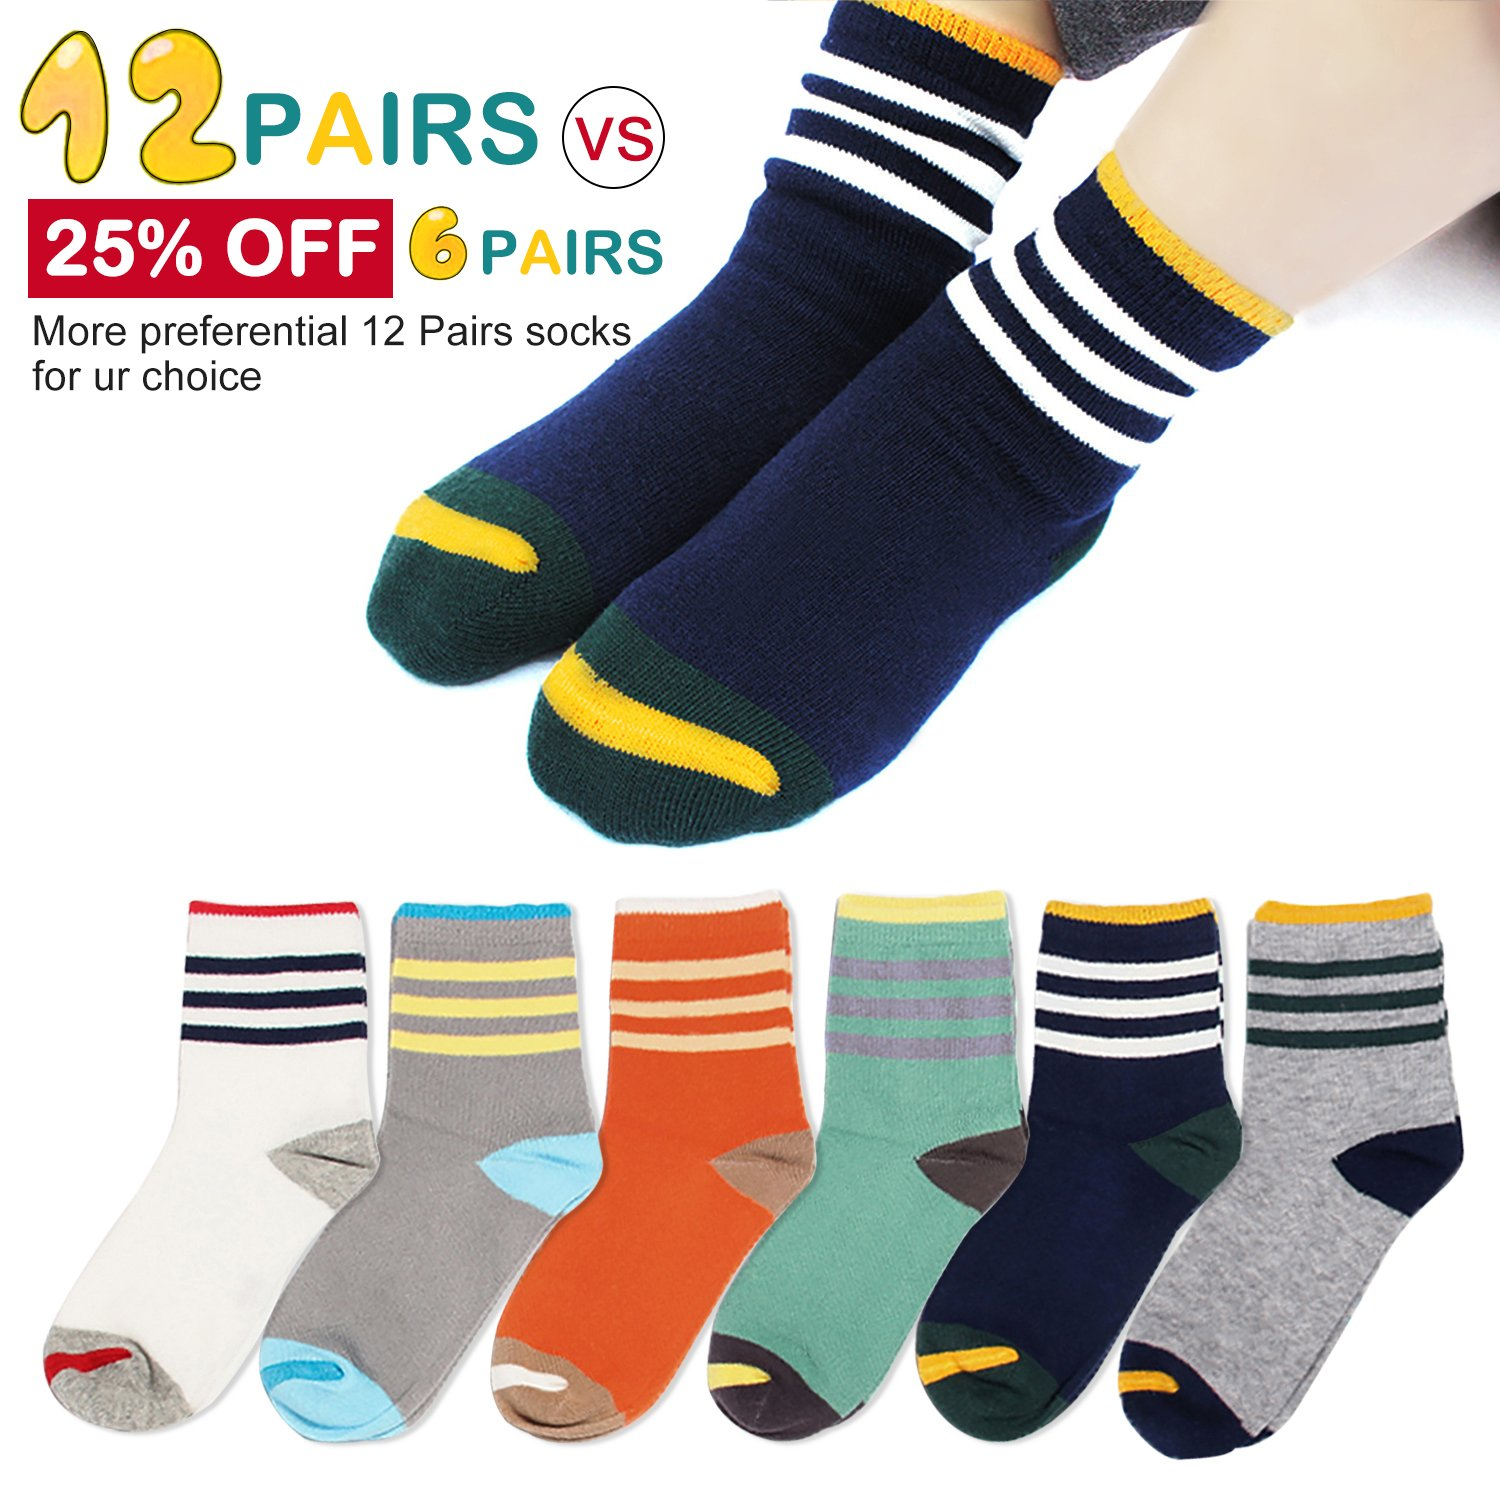 Kids Boys Girls Youth Crew Cotton Socks Toddler Non Skid Contrast Striped Athletic Quarter 5t 6t 7t for Sports Ankle Seamless Queen-Ks